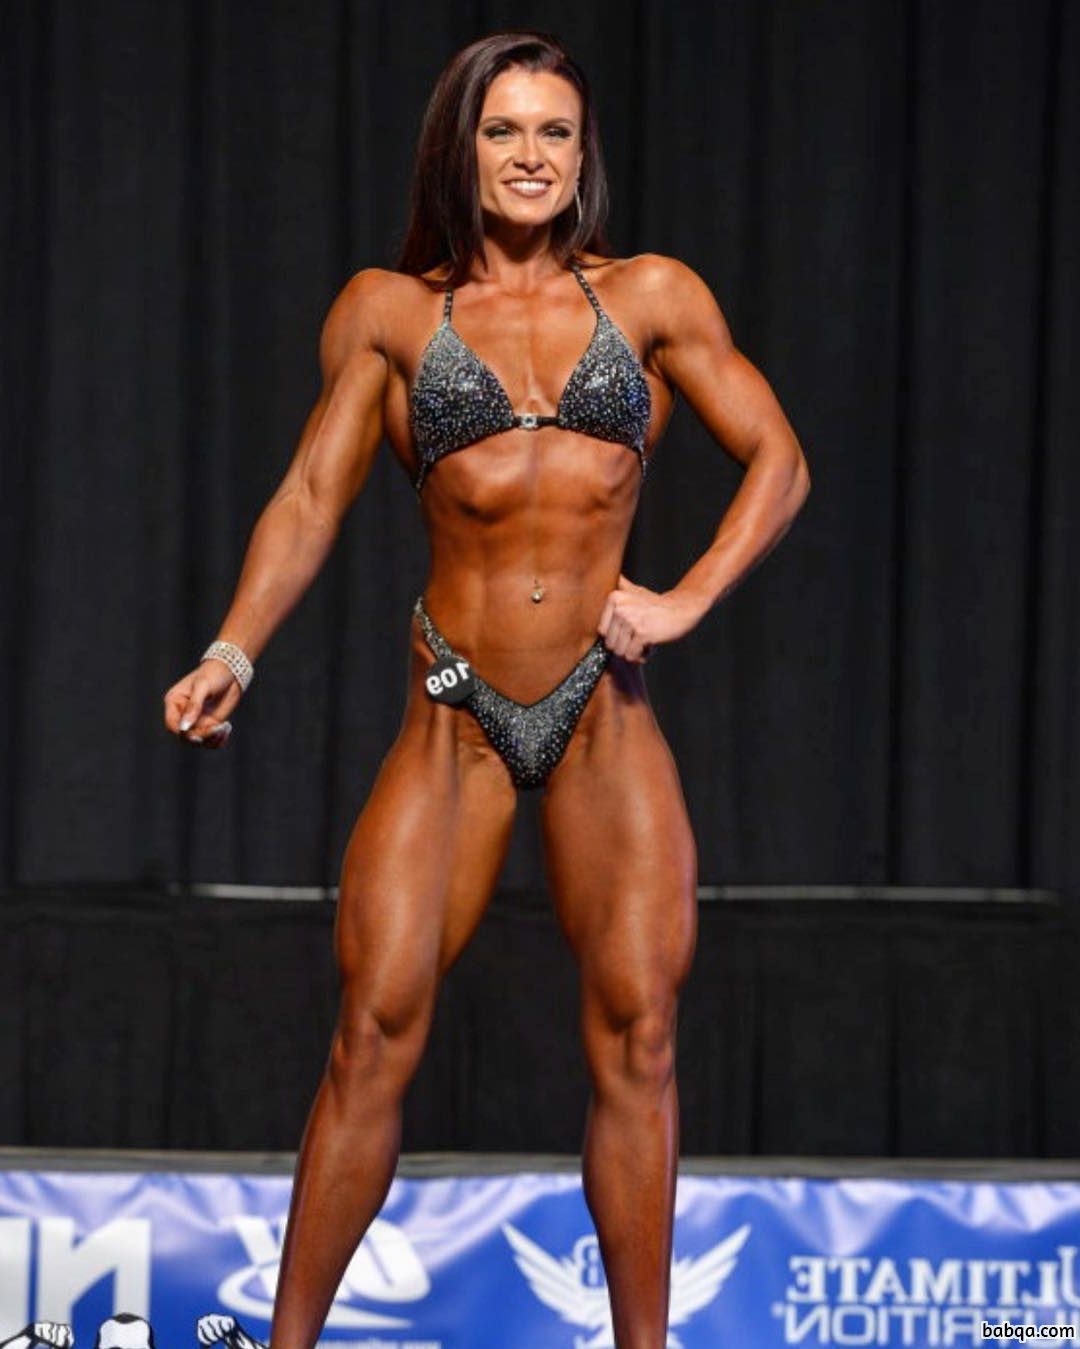 cute female bodybuilder with strong body and muscle booty repost from linkedin